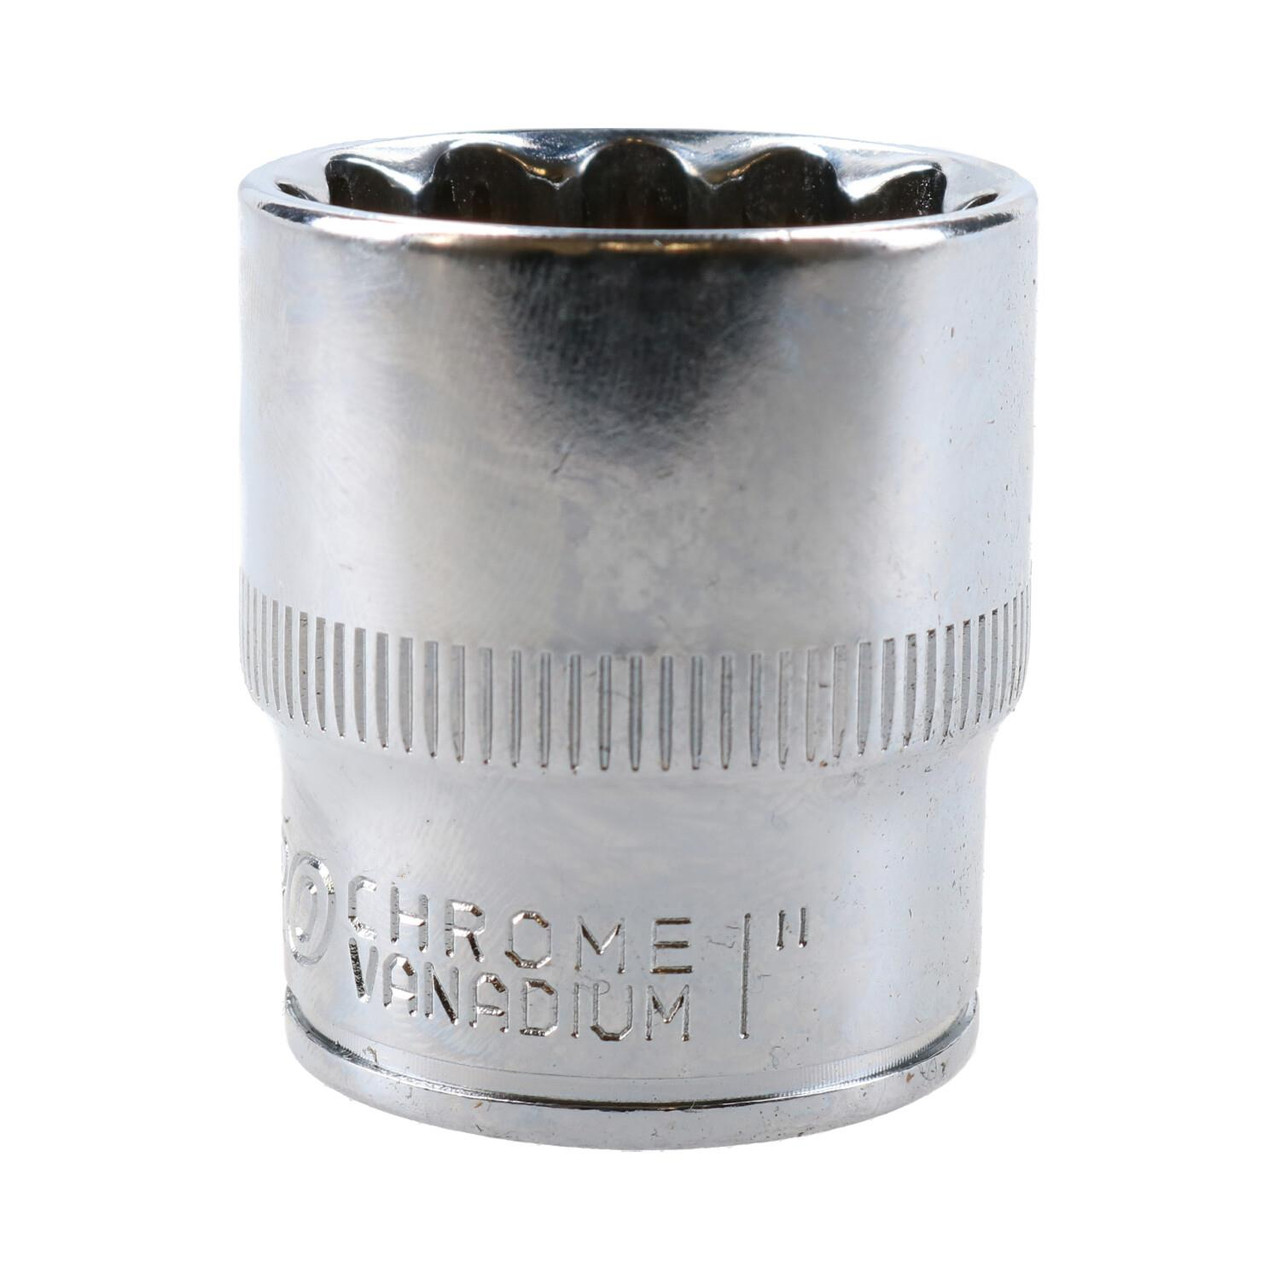 "1"" Imperial SAE Socket 1/2"" Drive 12 Point 36mm Length Chrome Vanadium Steel"